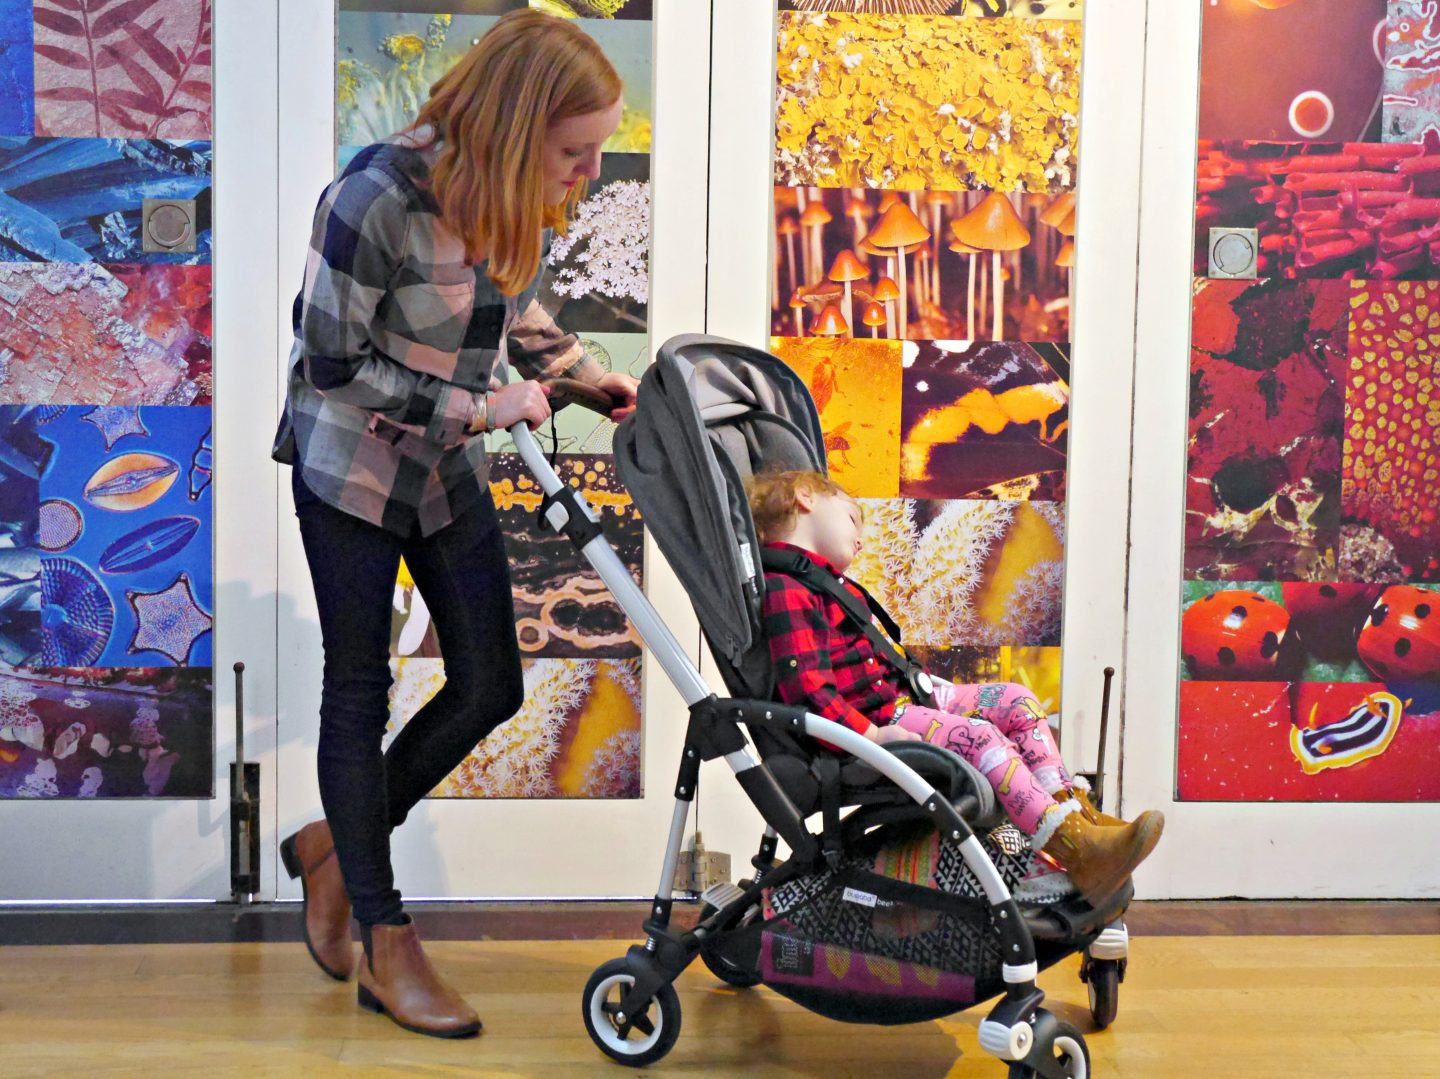 New Bugaboo Bee 5 review - why it's the perfect city pram for London